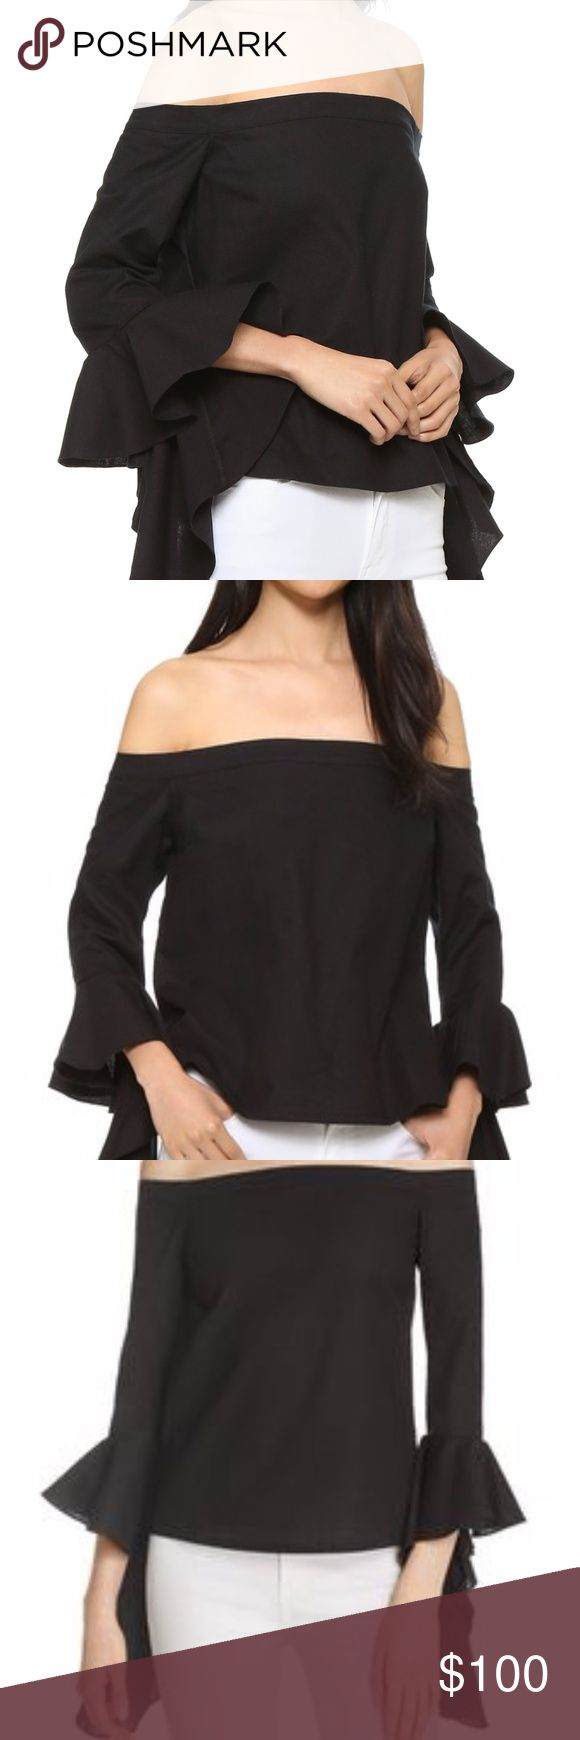 WORN ONCE - MLM LABEL Essential Top | Size Small Worn once Small  This crisp MLM LABEL top cuts a chic off-shoulder silhouette with bold, ruffled sleeves. Covered elastic section at back neckline.  Fabric: Poplin. 100% cotton. Wash cold or dry clean. MLM Tops Blouses